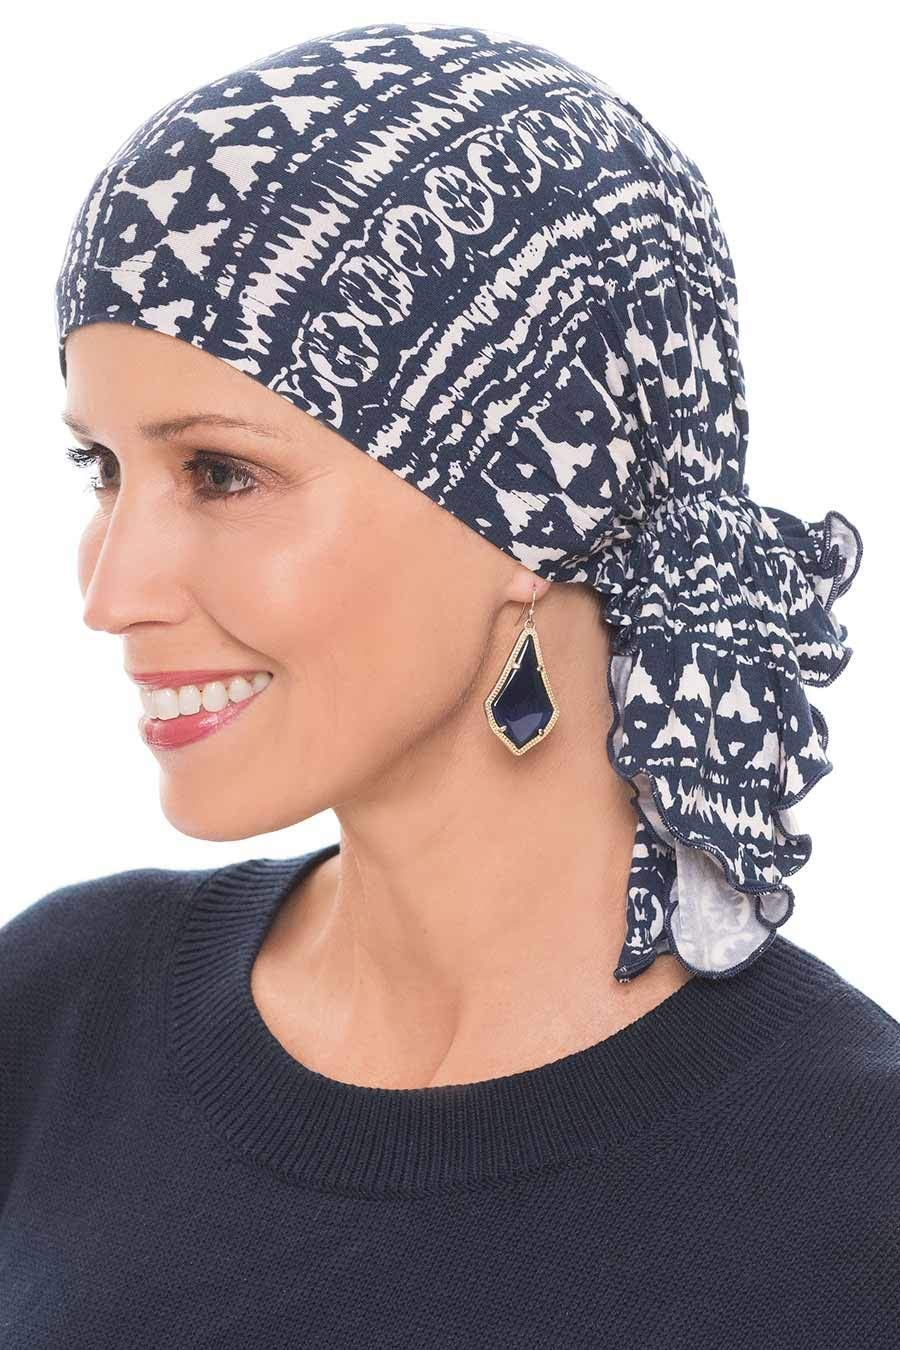 Slip-On Solid Slinky Pre Tied Head Scarf - Scarves for Women with Chemo Luxury Bamboo - Navy Batik